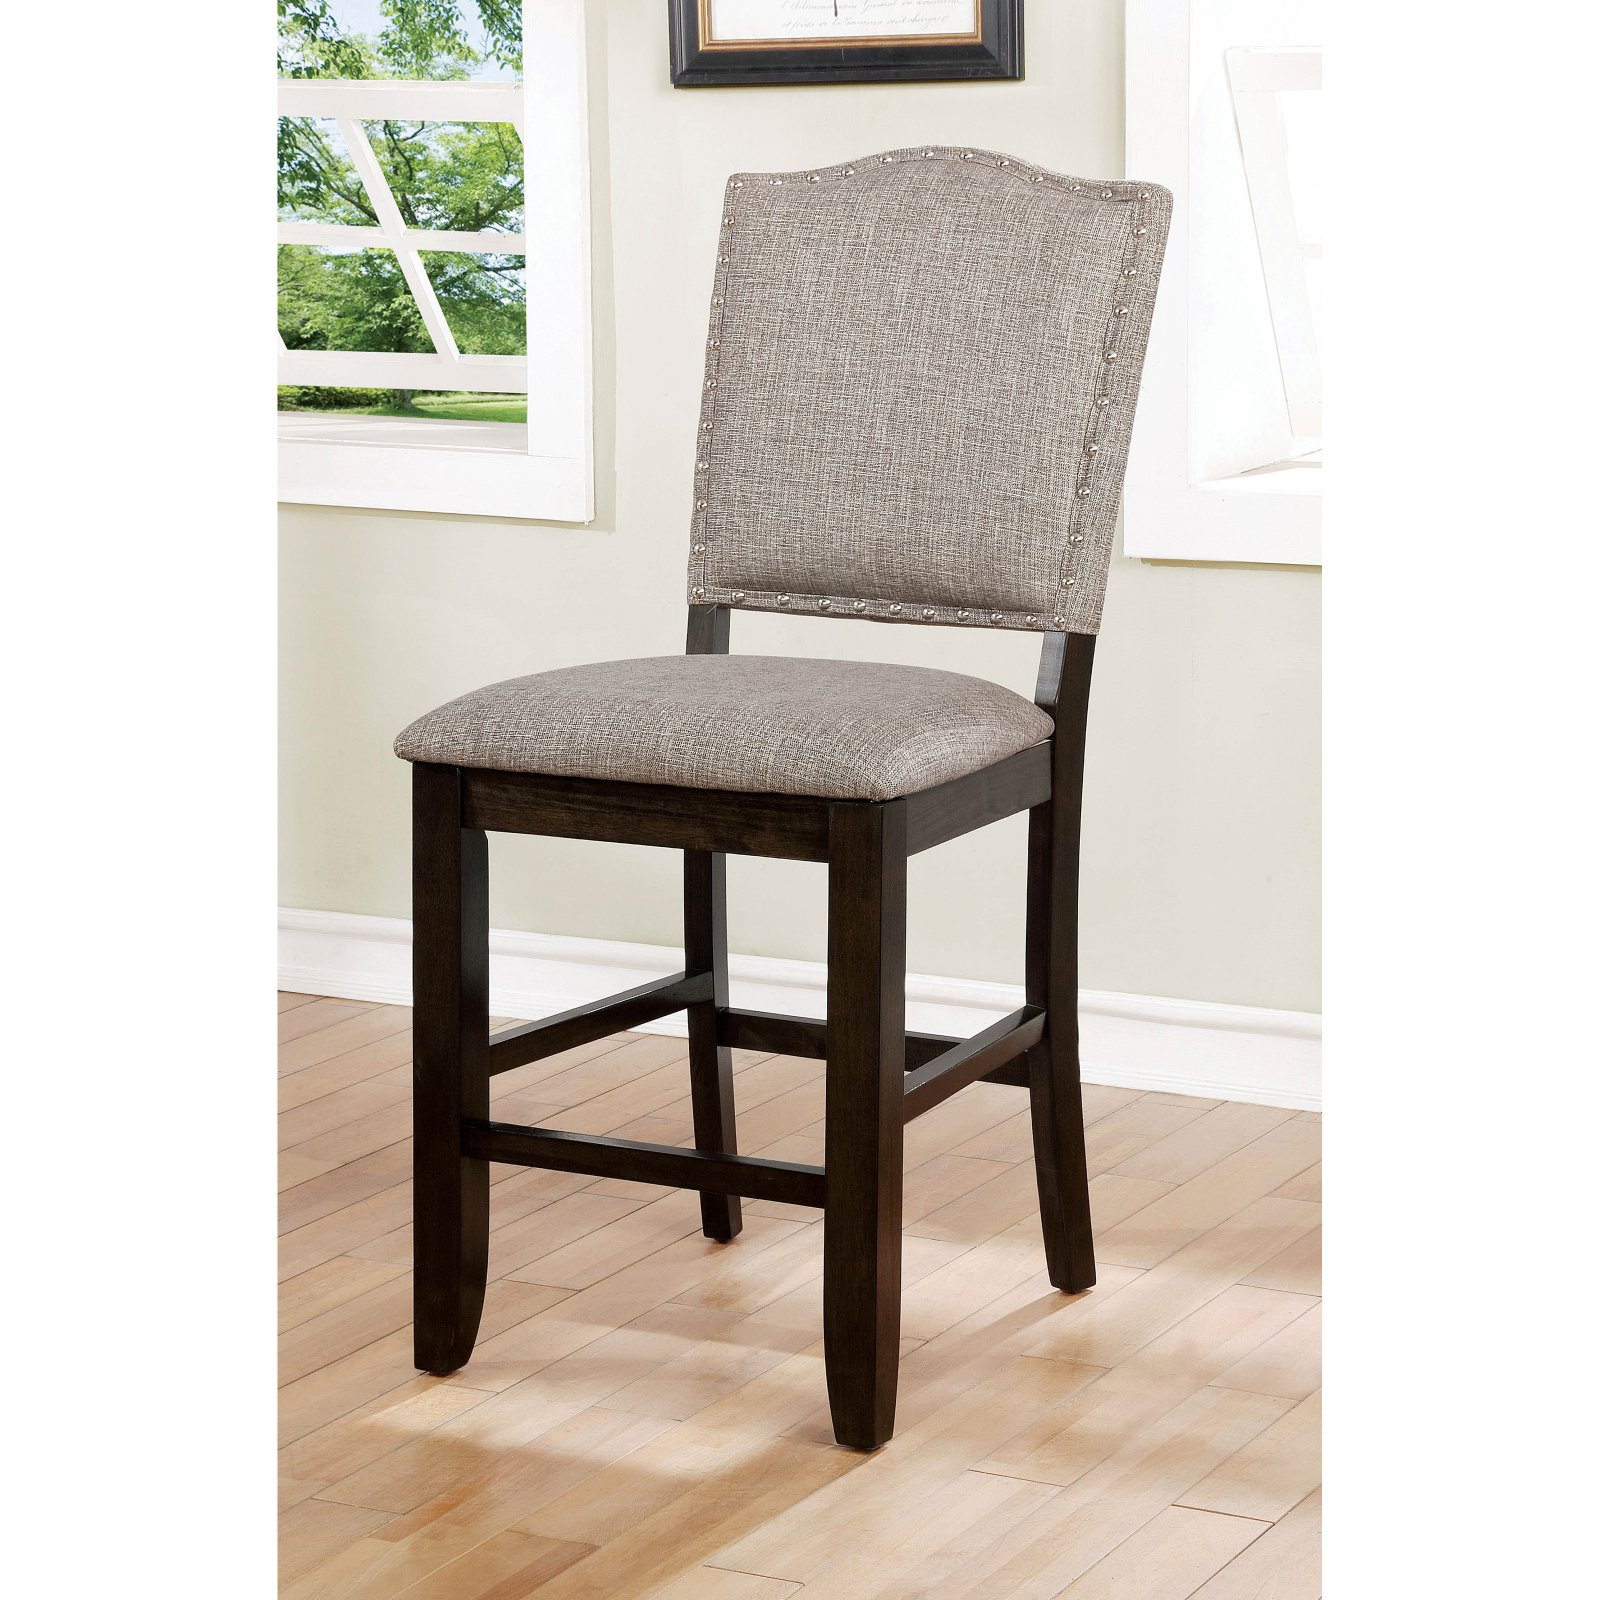 Bon Furniture Of America Carter Nailhead Trim Counter Height Dining Side Chair    Set Of 2